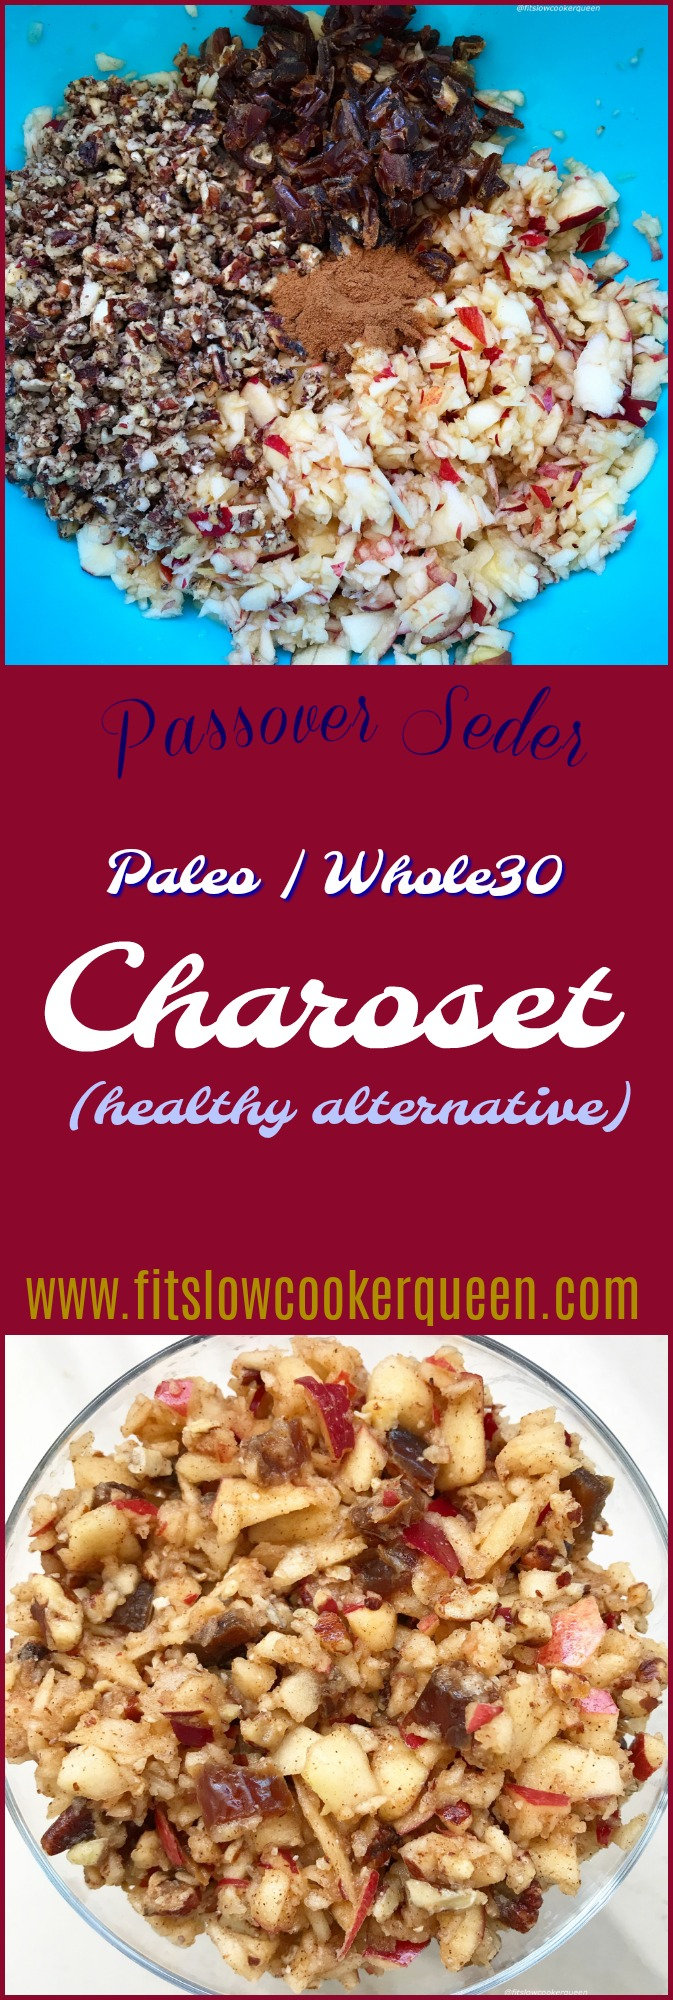 Charoset is a simple dish made from apples and walnuts that's served during a passover seder. This paleo and whole30 version omits the wine or juice, using all-natural ingredients instead.